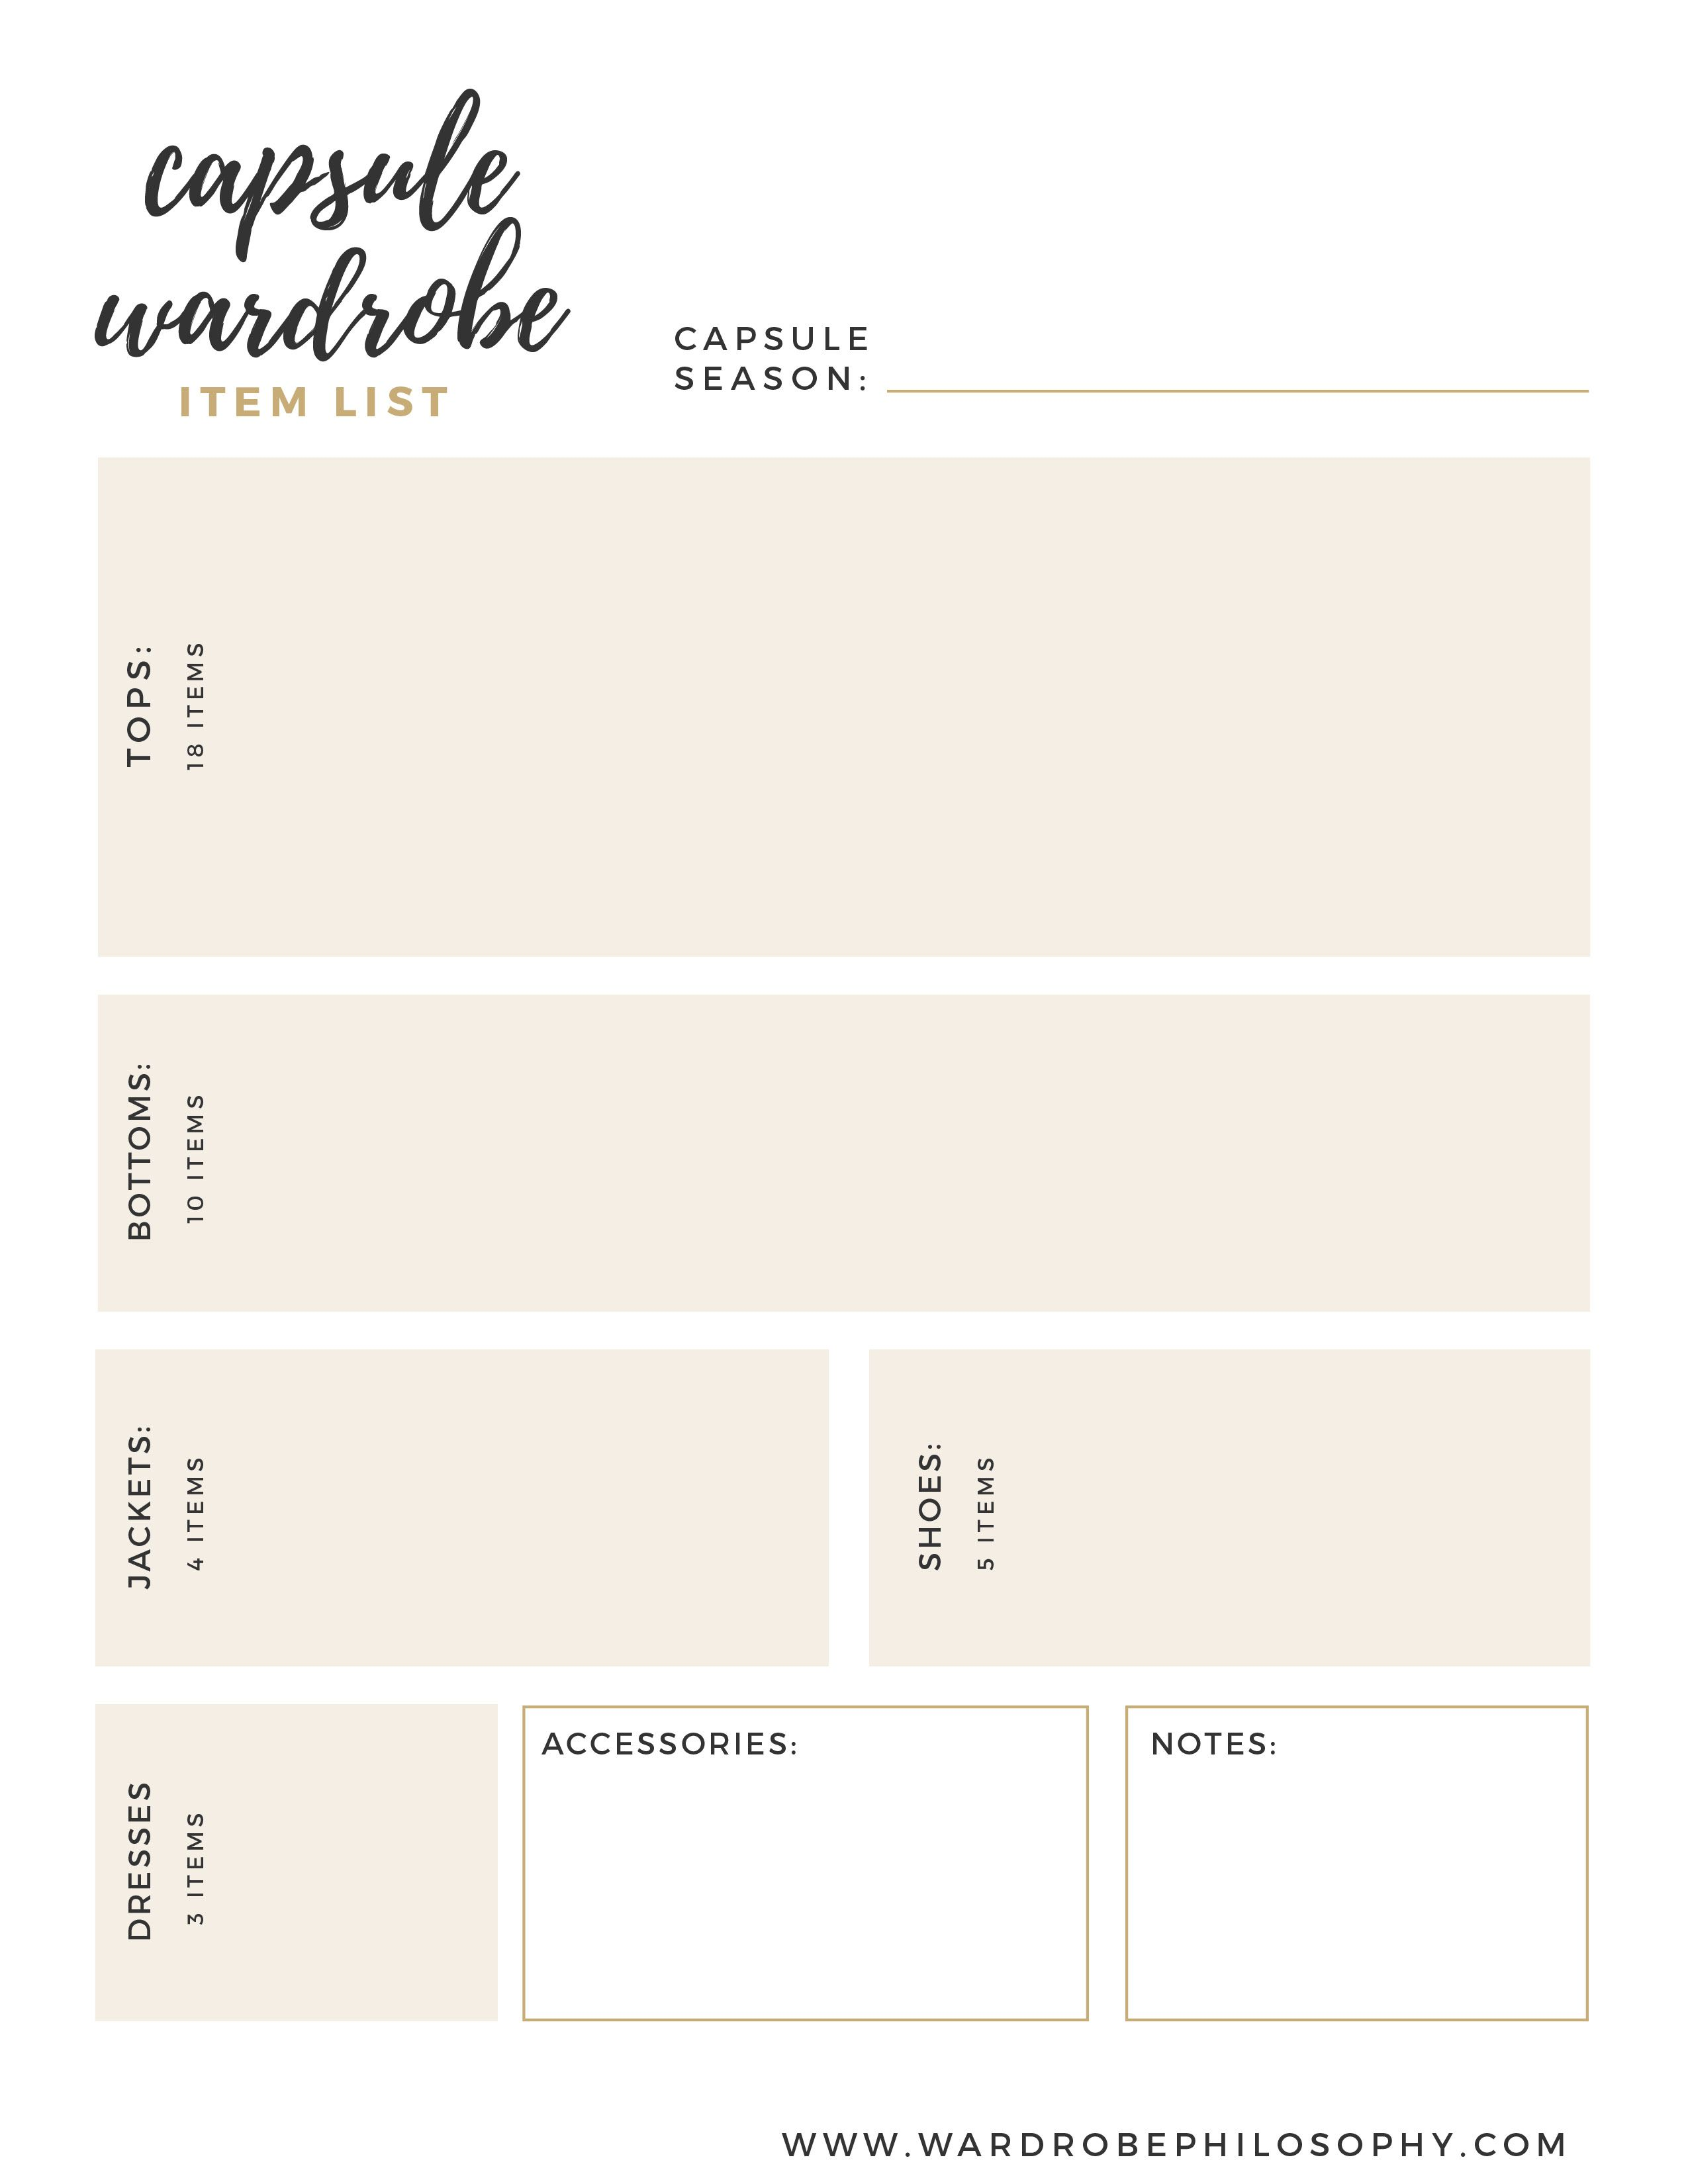 The Capsule Wardrobe Wardrobe List Want To Have A Capsule